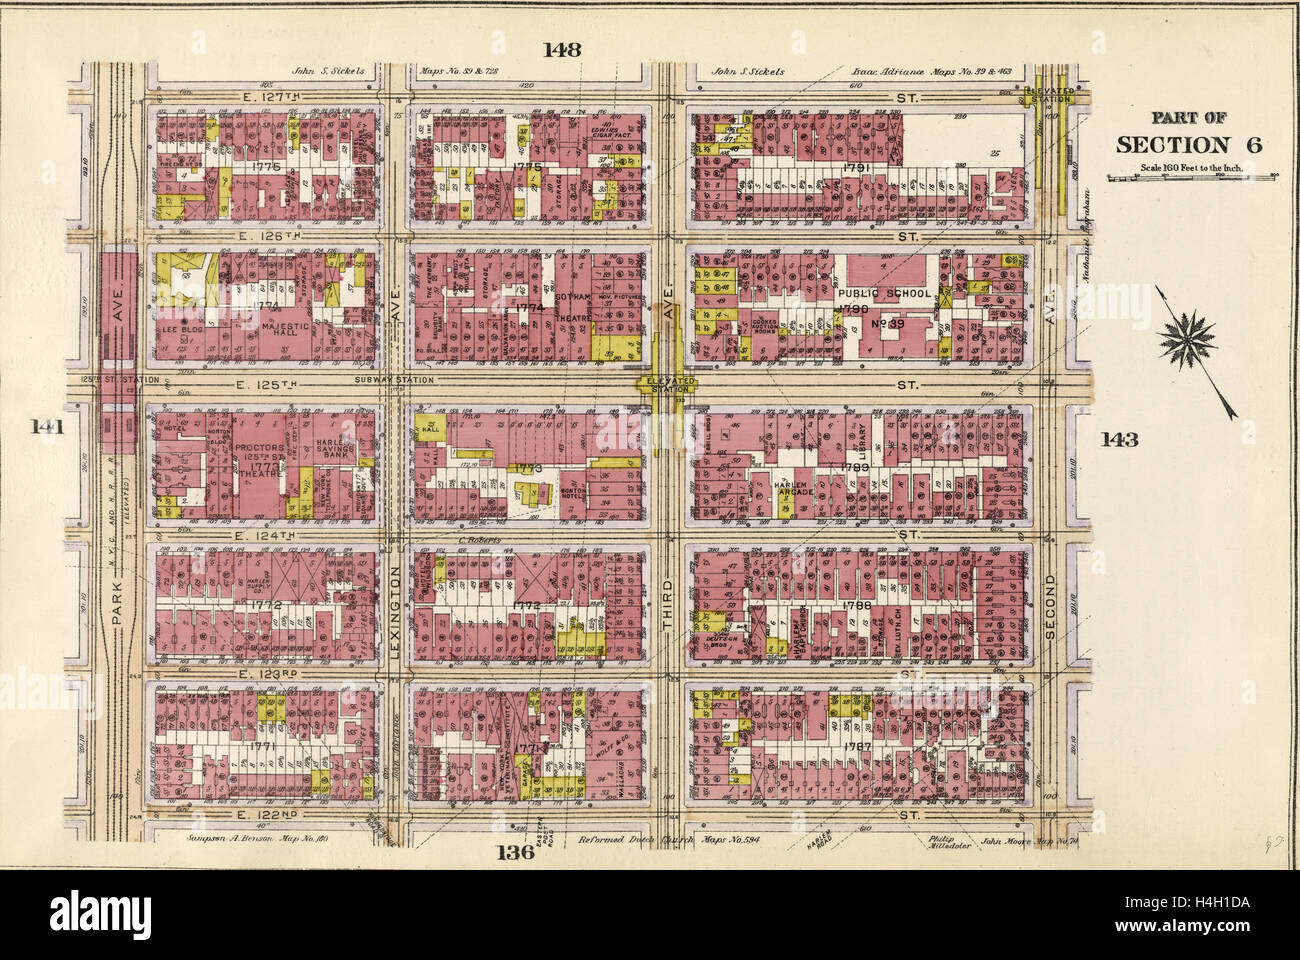 Plate 142: Bounded by E. 127th Street, Second Avenue, E. 122nd Street and Park Avenue, New York, USA - Stock Image